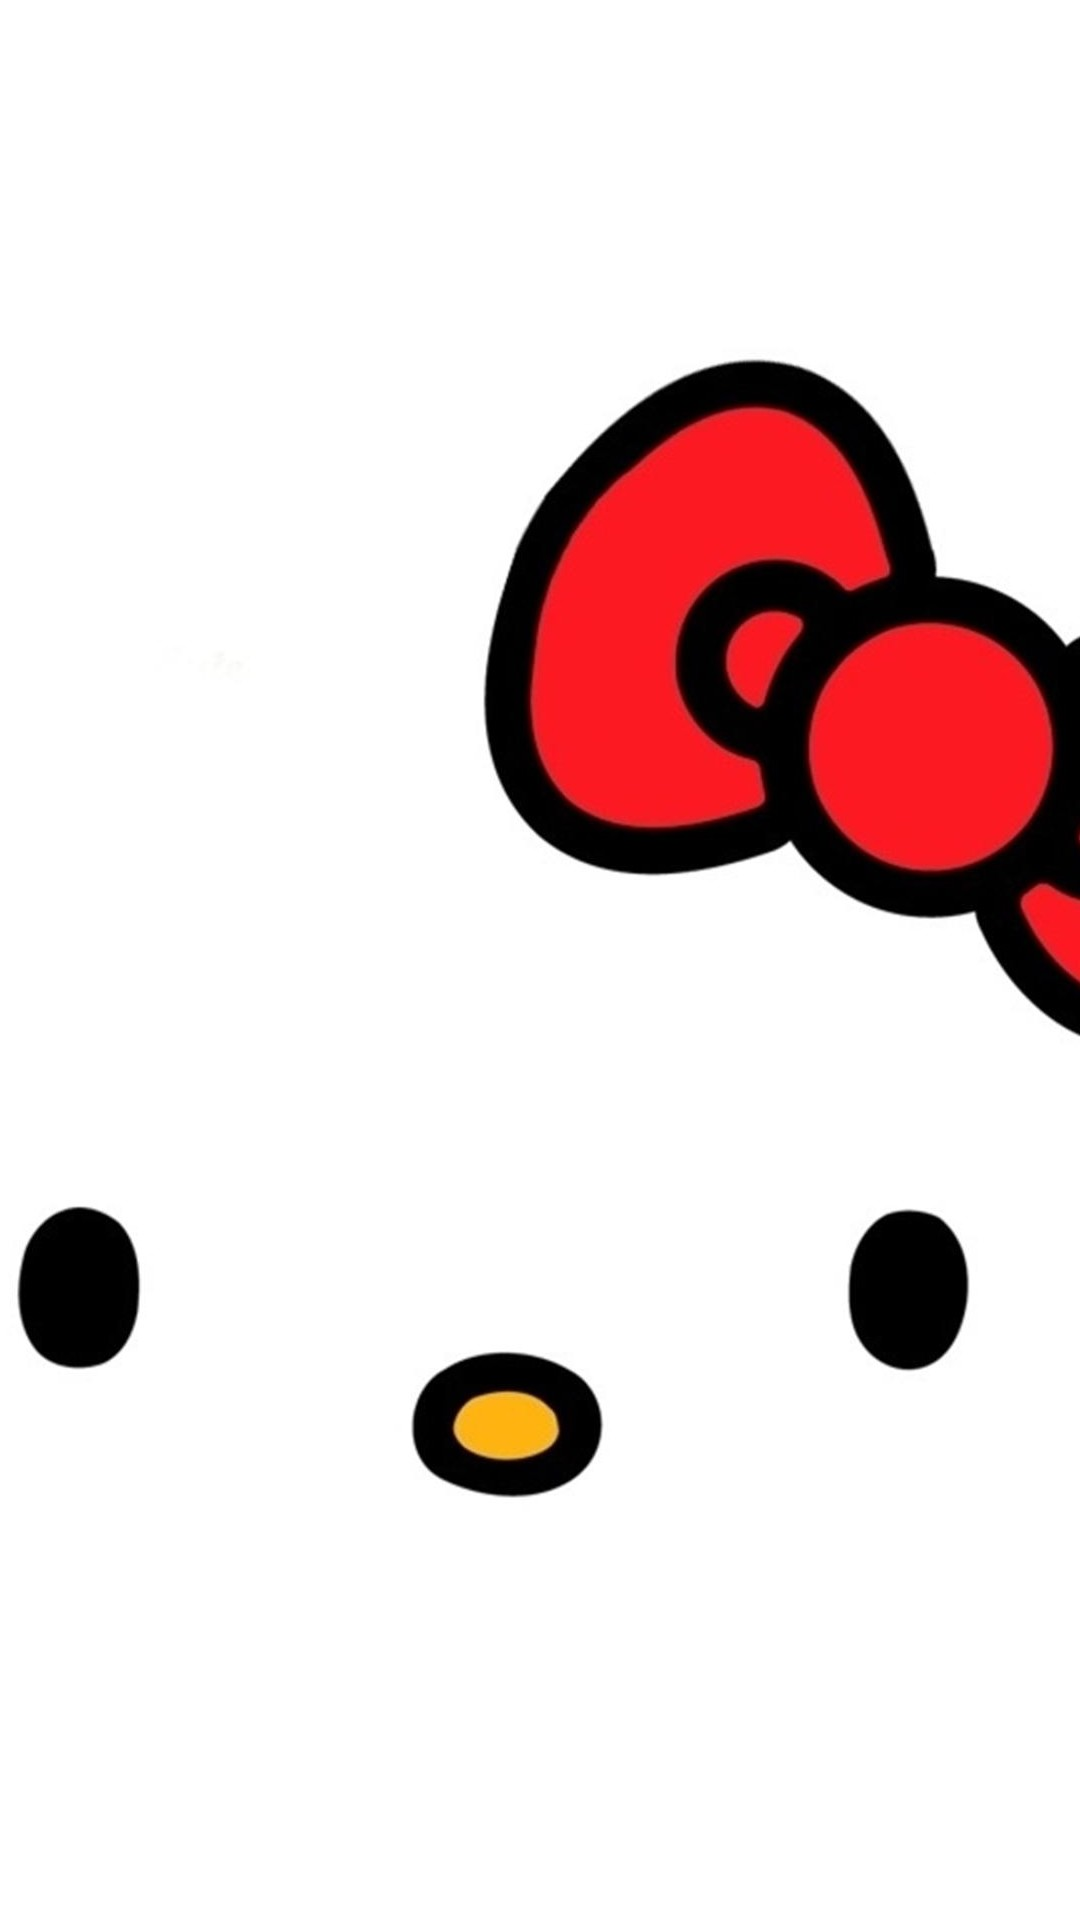 46 ] Hello Kitty Wallpaper Android On WallpaperSafari